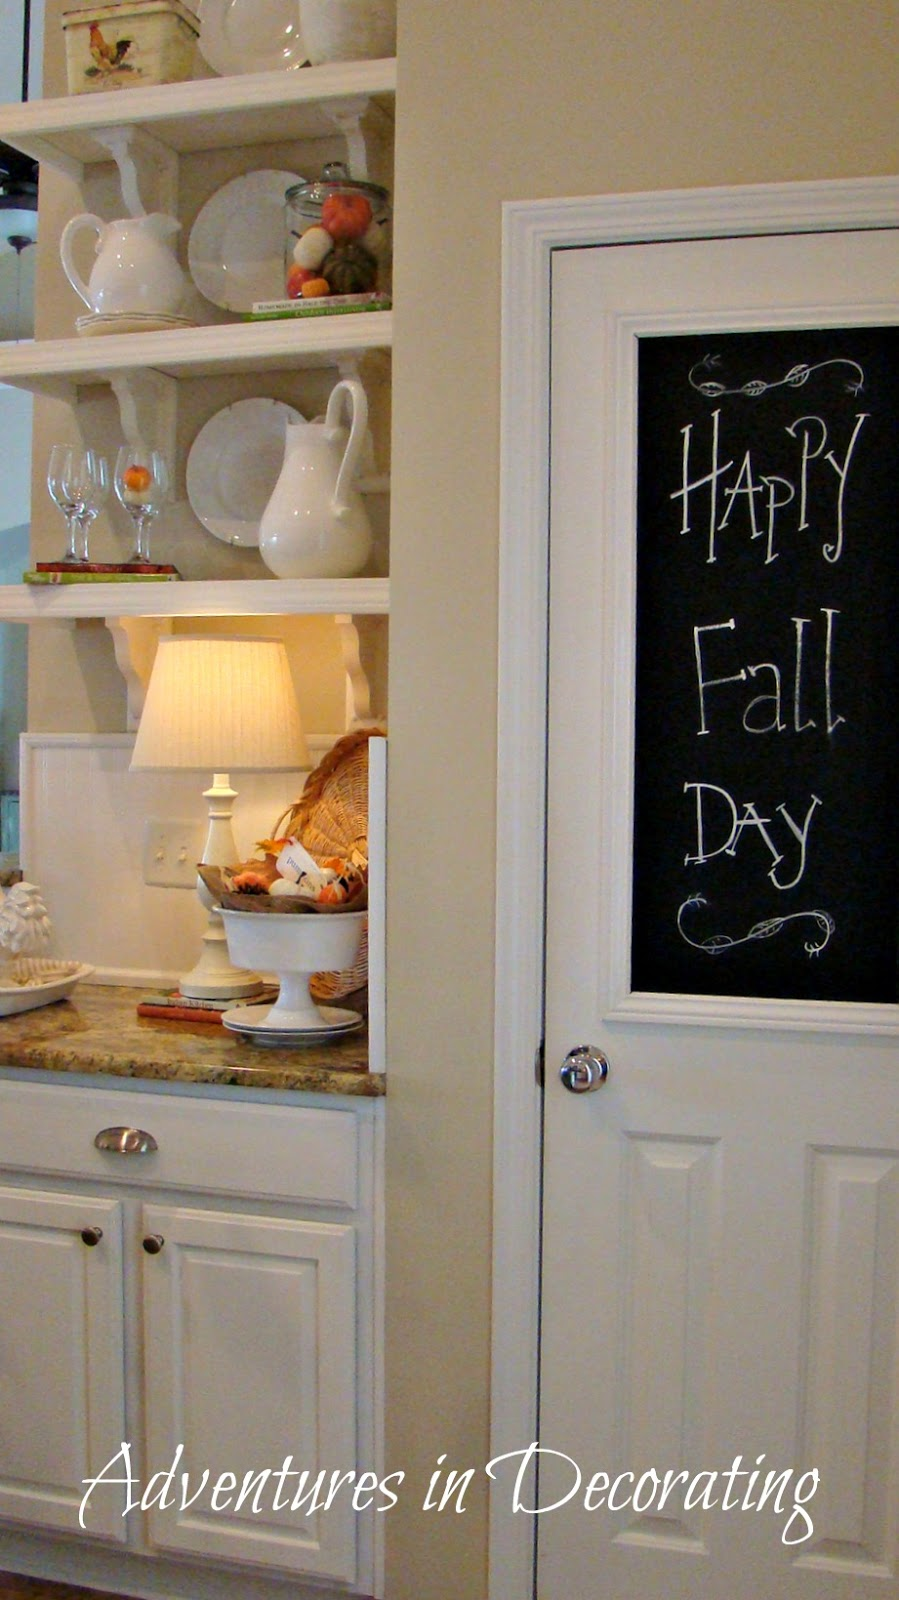 Decorating Blogs Southern Savvy Southern Style My Favorite Roomadventures In Decorating